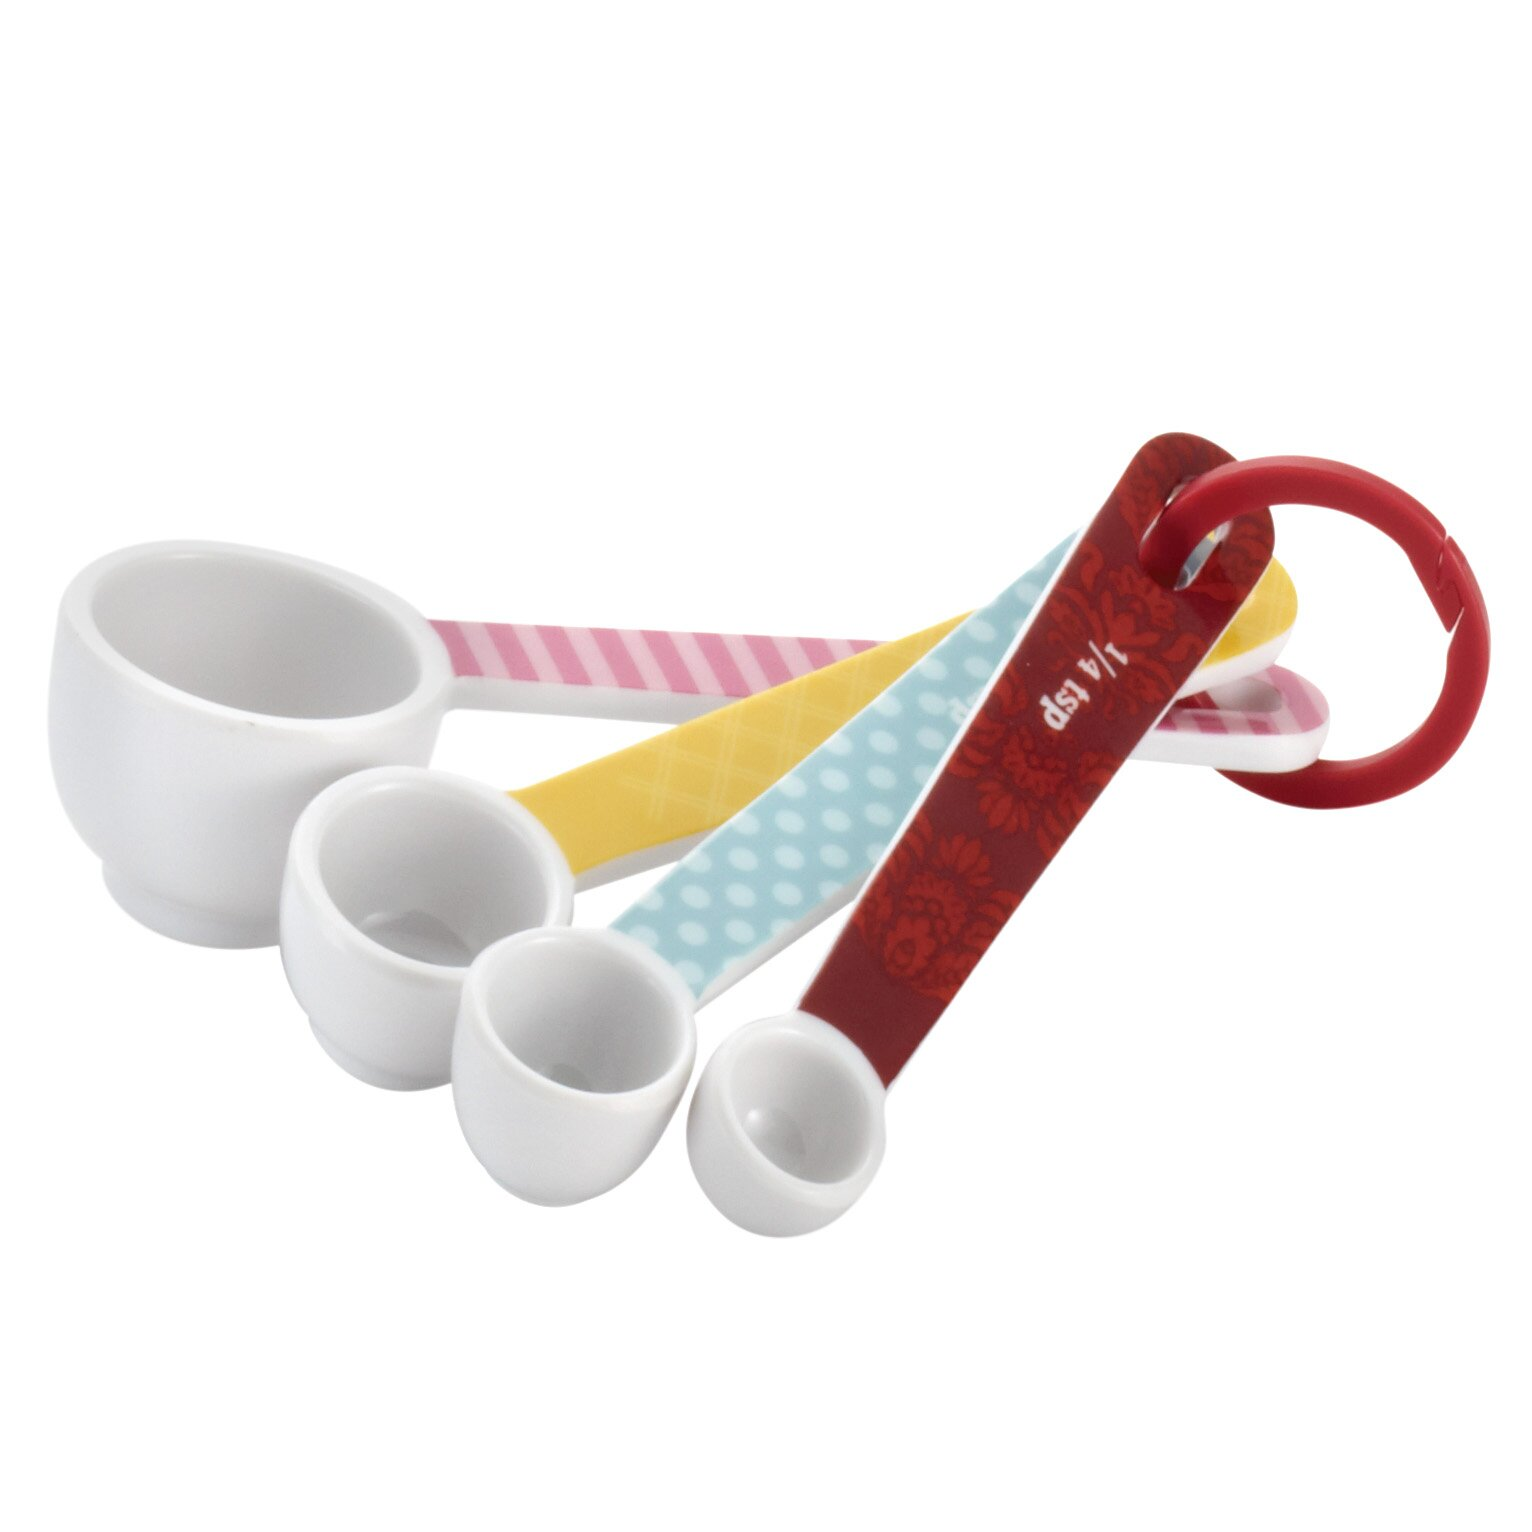 Decorative Measuring Spoons And Cups Cake Boss 4 Piece Countertop Accessories Melamine Measuring Spoon